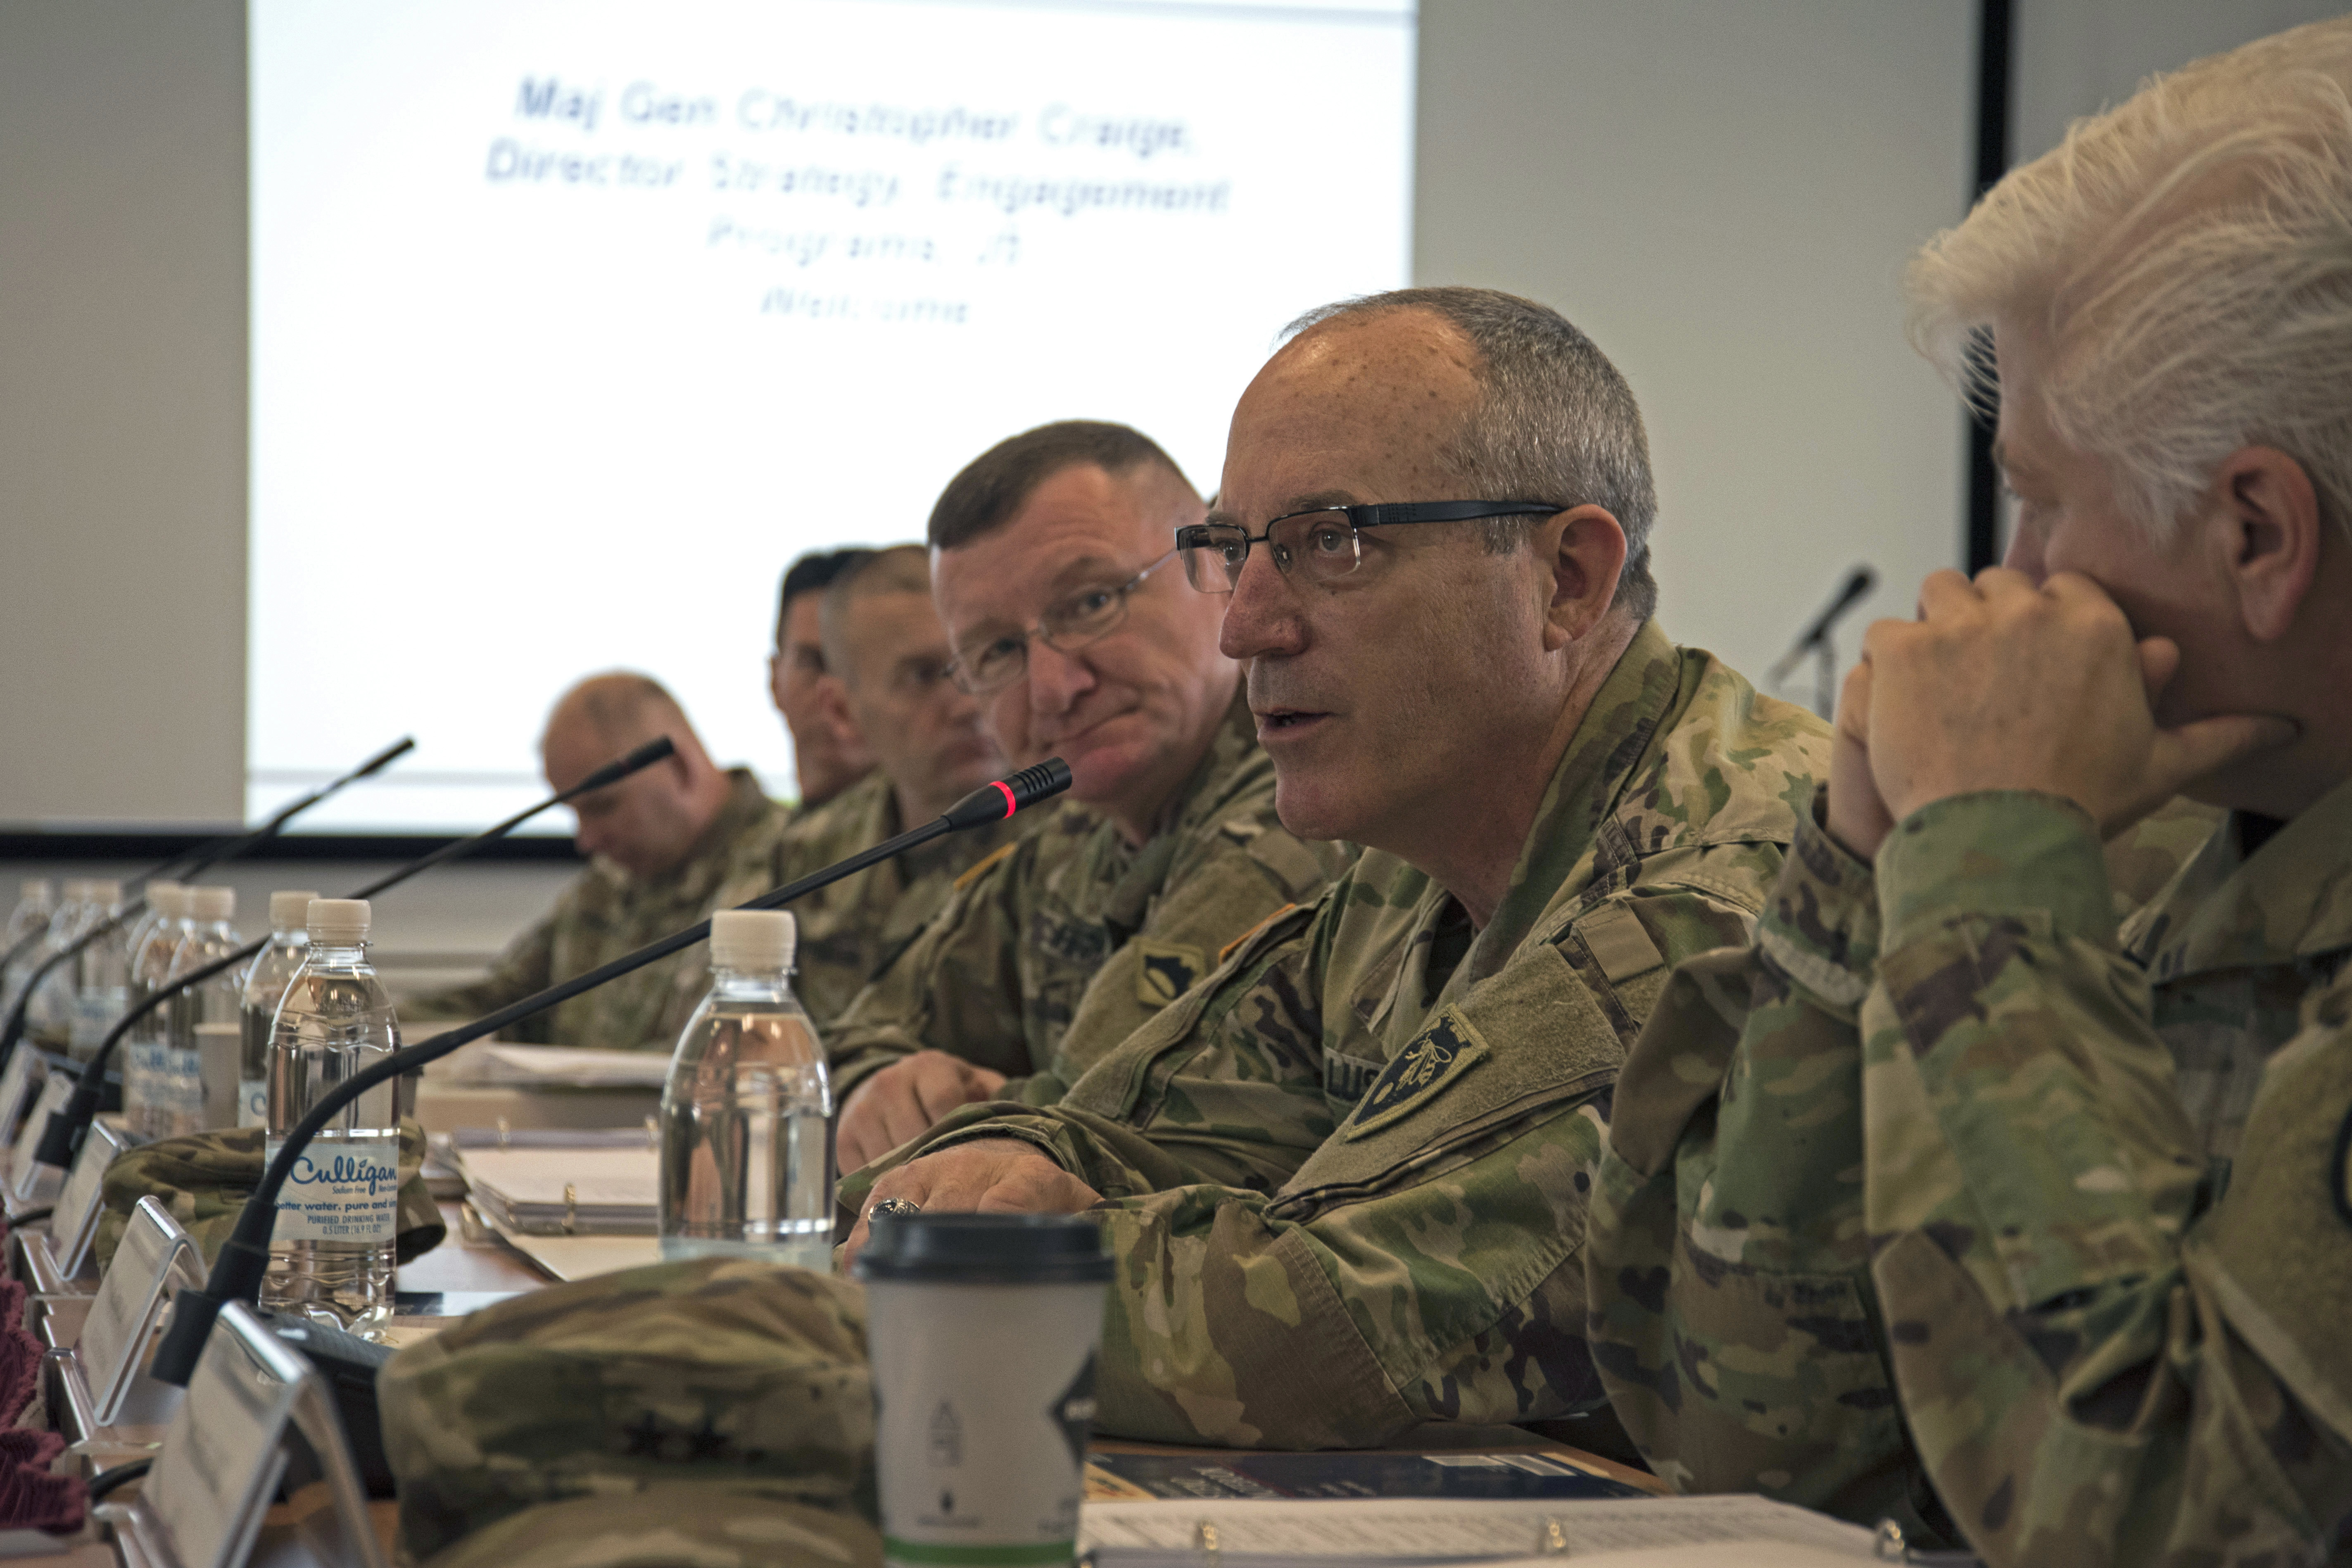 Army Maj. Gen. Gregory Lusk, the adjutant general for the North Carolina National Guard, speaks during The 2019 Adjutant General State Partnership Program Conference April 15 in Stuttgart, Germany. Officials from all partnering states and the District of Columbia gathered to discuss increasing coordination and communication while also increasing synergy to achieve AFRICOM campaign goals. (U.S. Navy photo by Mass Communication Specialist 1st Class Christopher Hurd/Released)